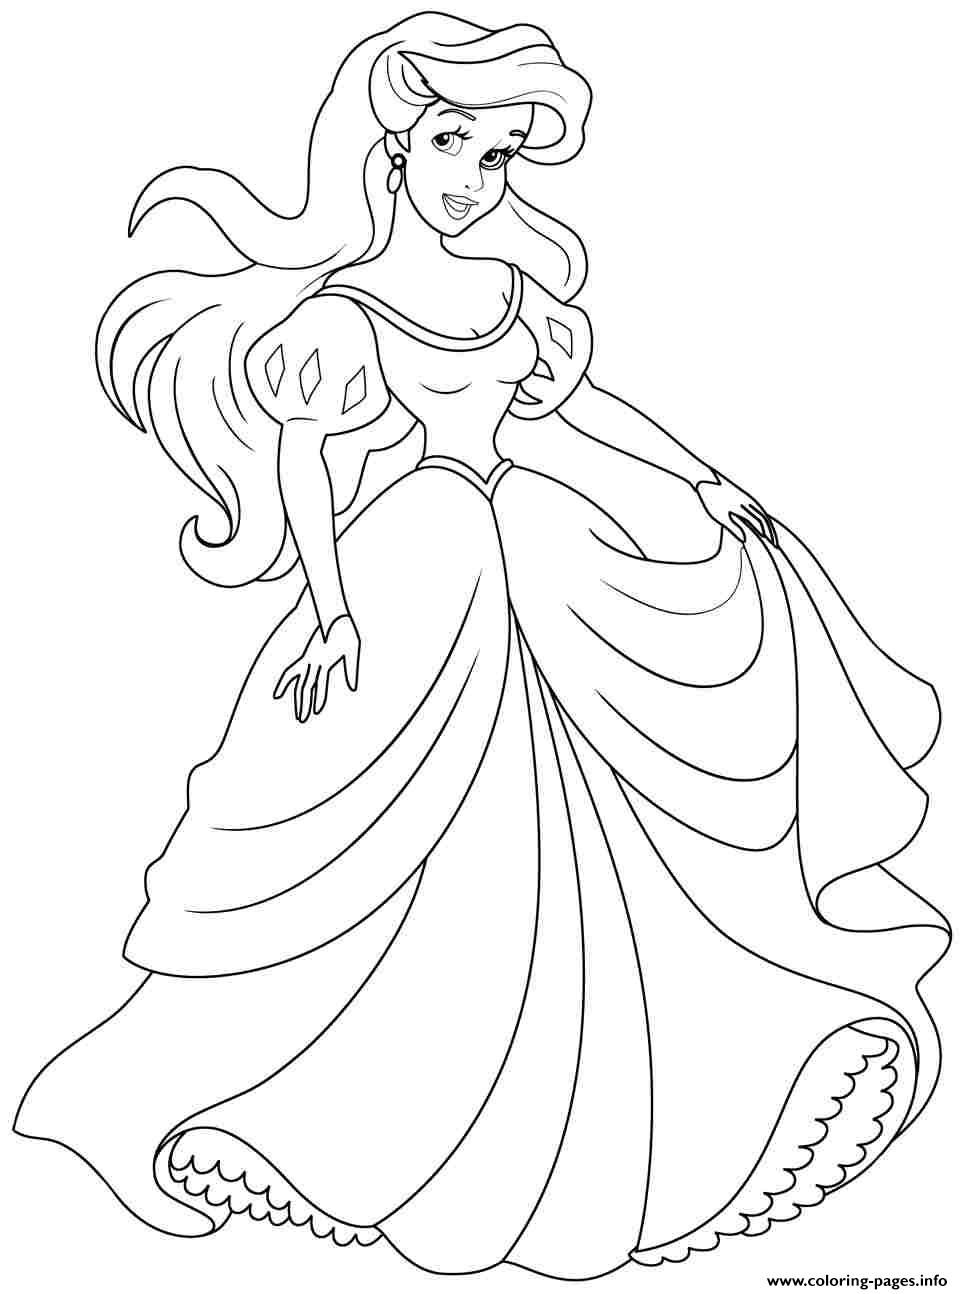 Print princess ariel human coloring pages Coloring pages